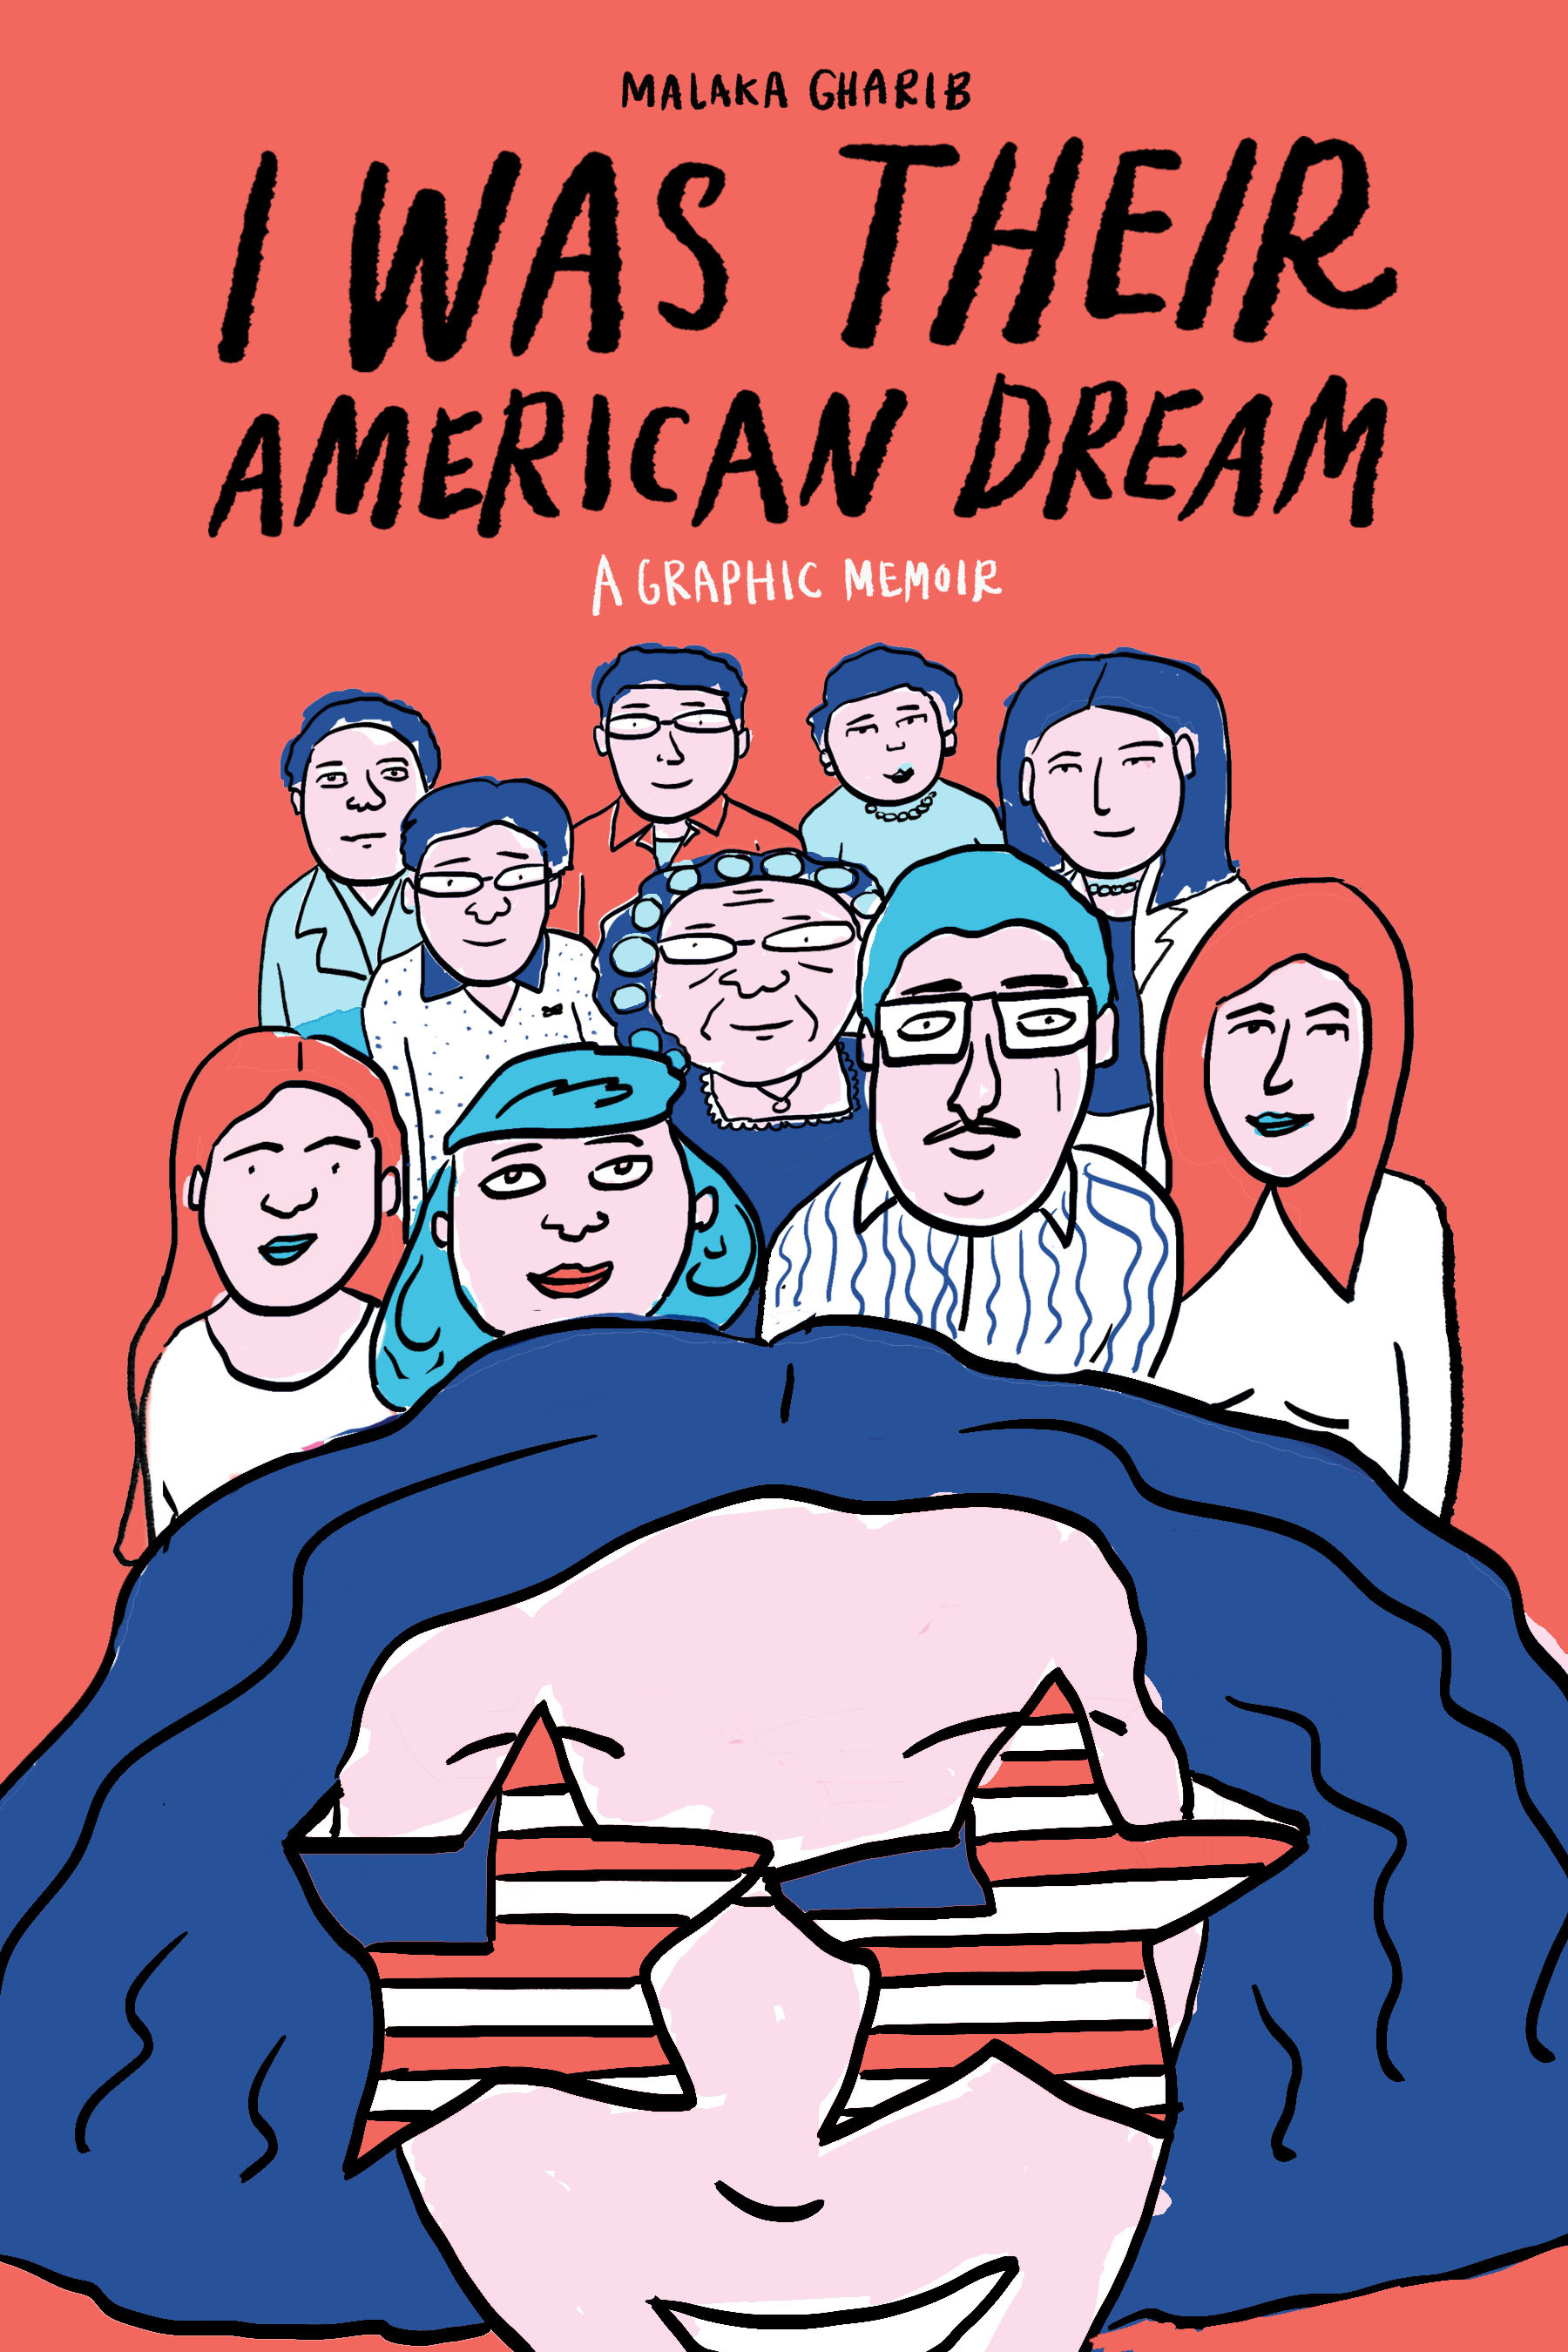 I Was Their American Dream by Malaka Gharib (23 Books by Filipino Diaspora Authors For Your Shelf)